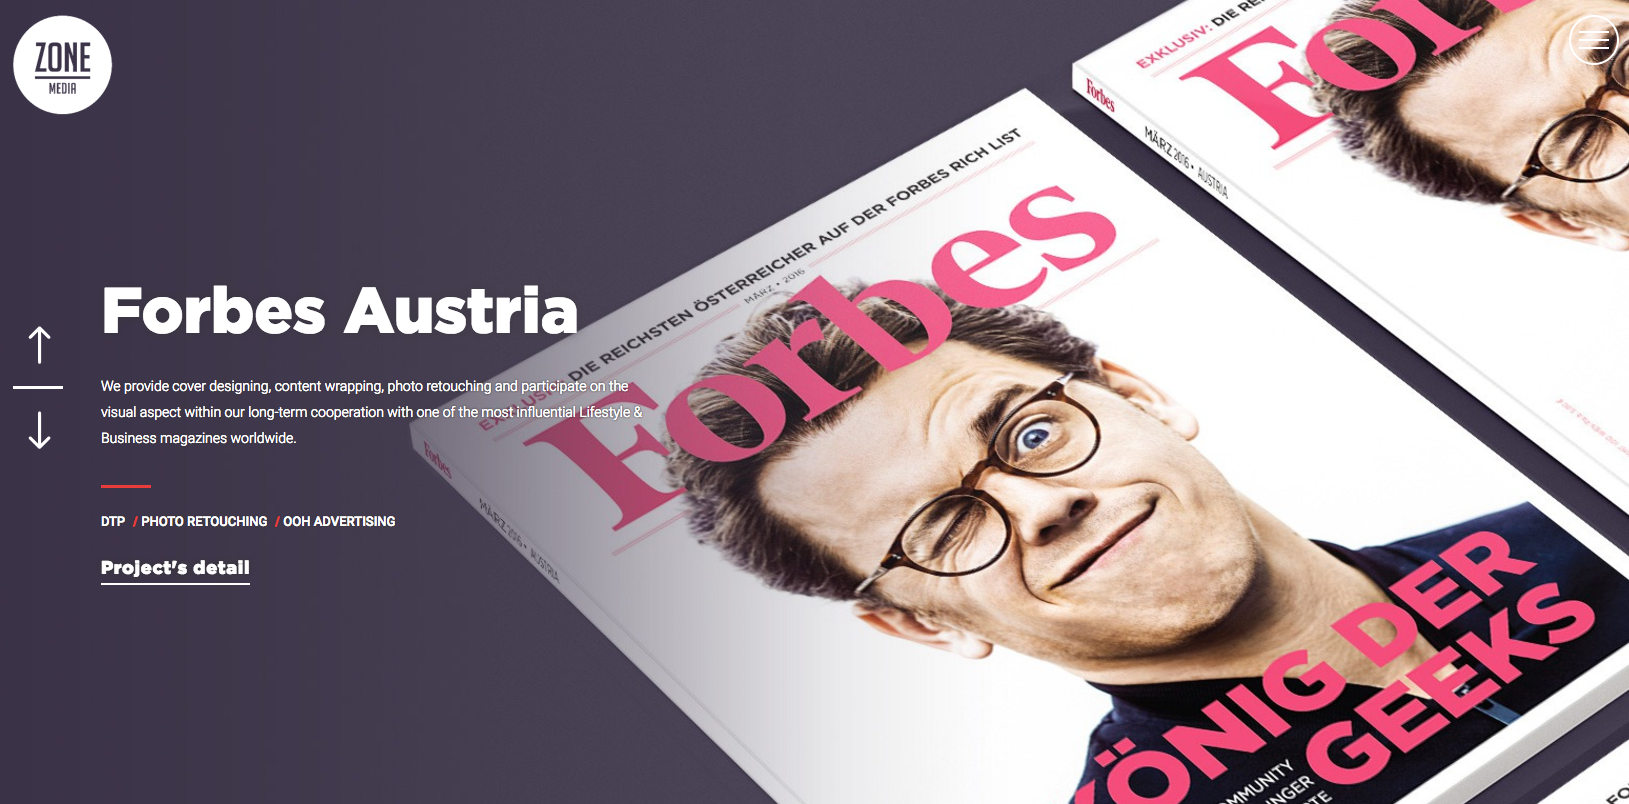 ZoneMedia - Digital Advertising Heroes - Slovakia - Agency - Digital